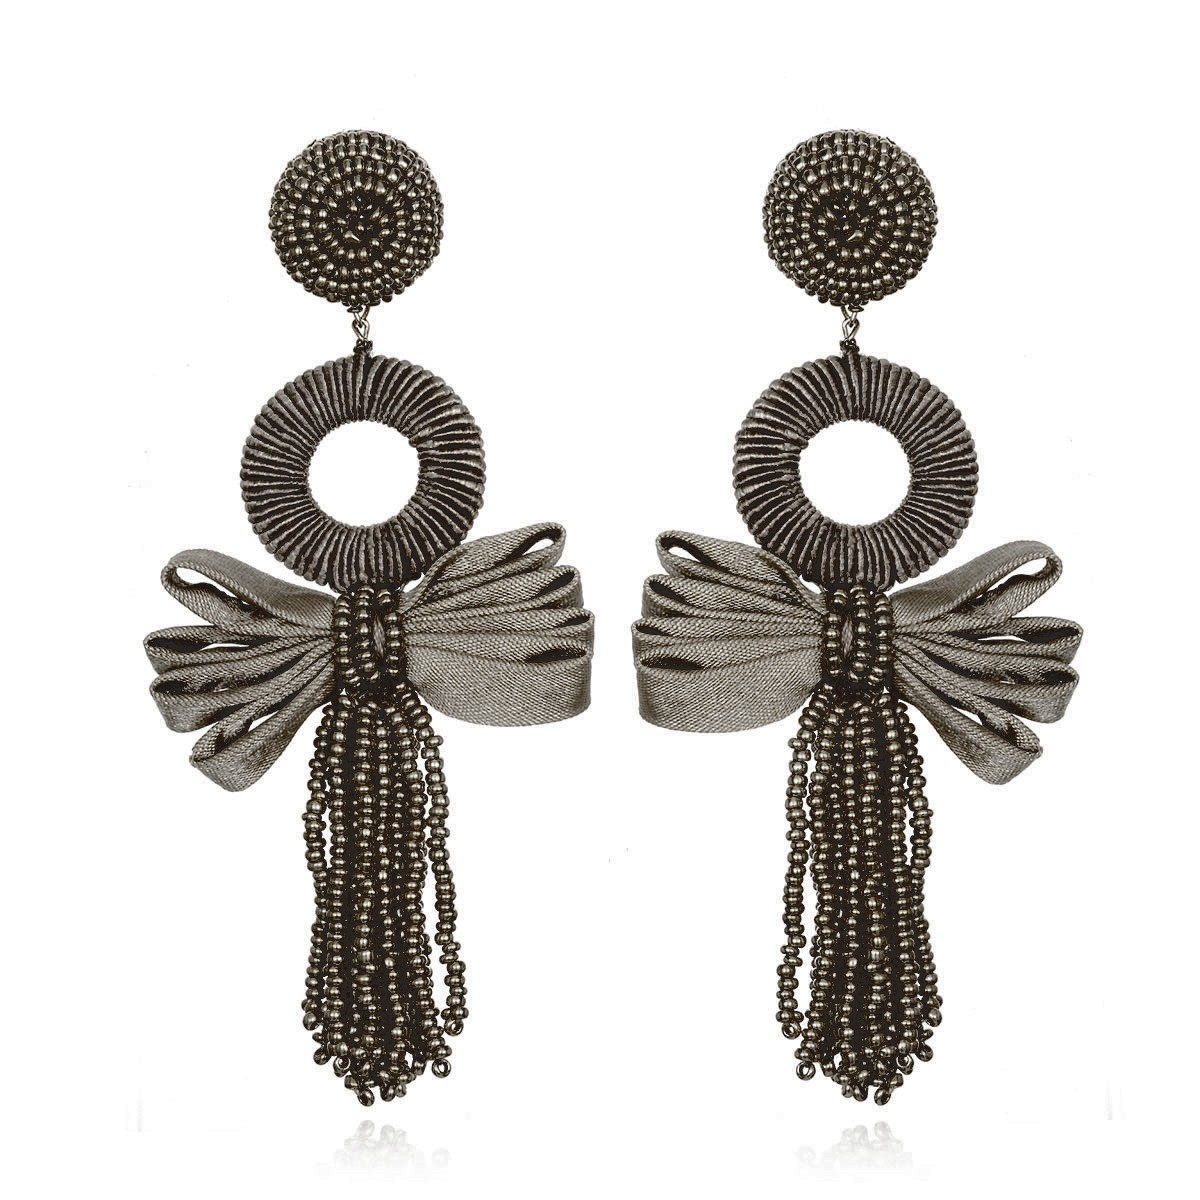 Beijing Charcoal Bow Earrings by SUZANNA DAI